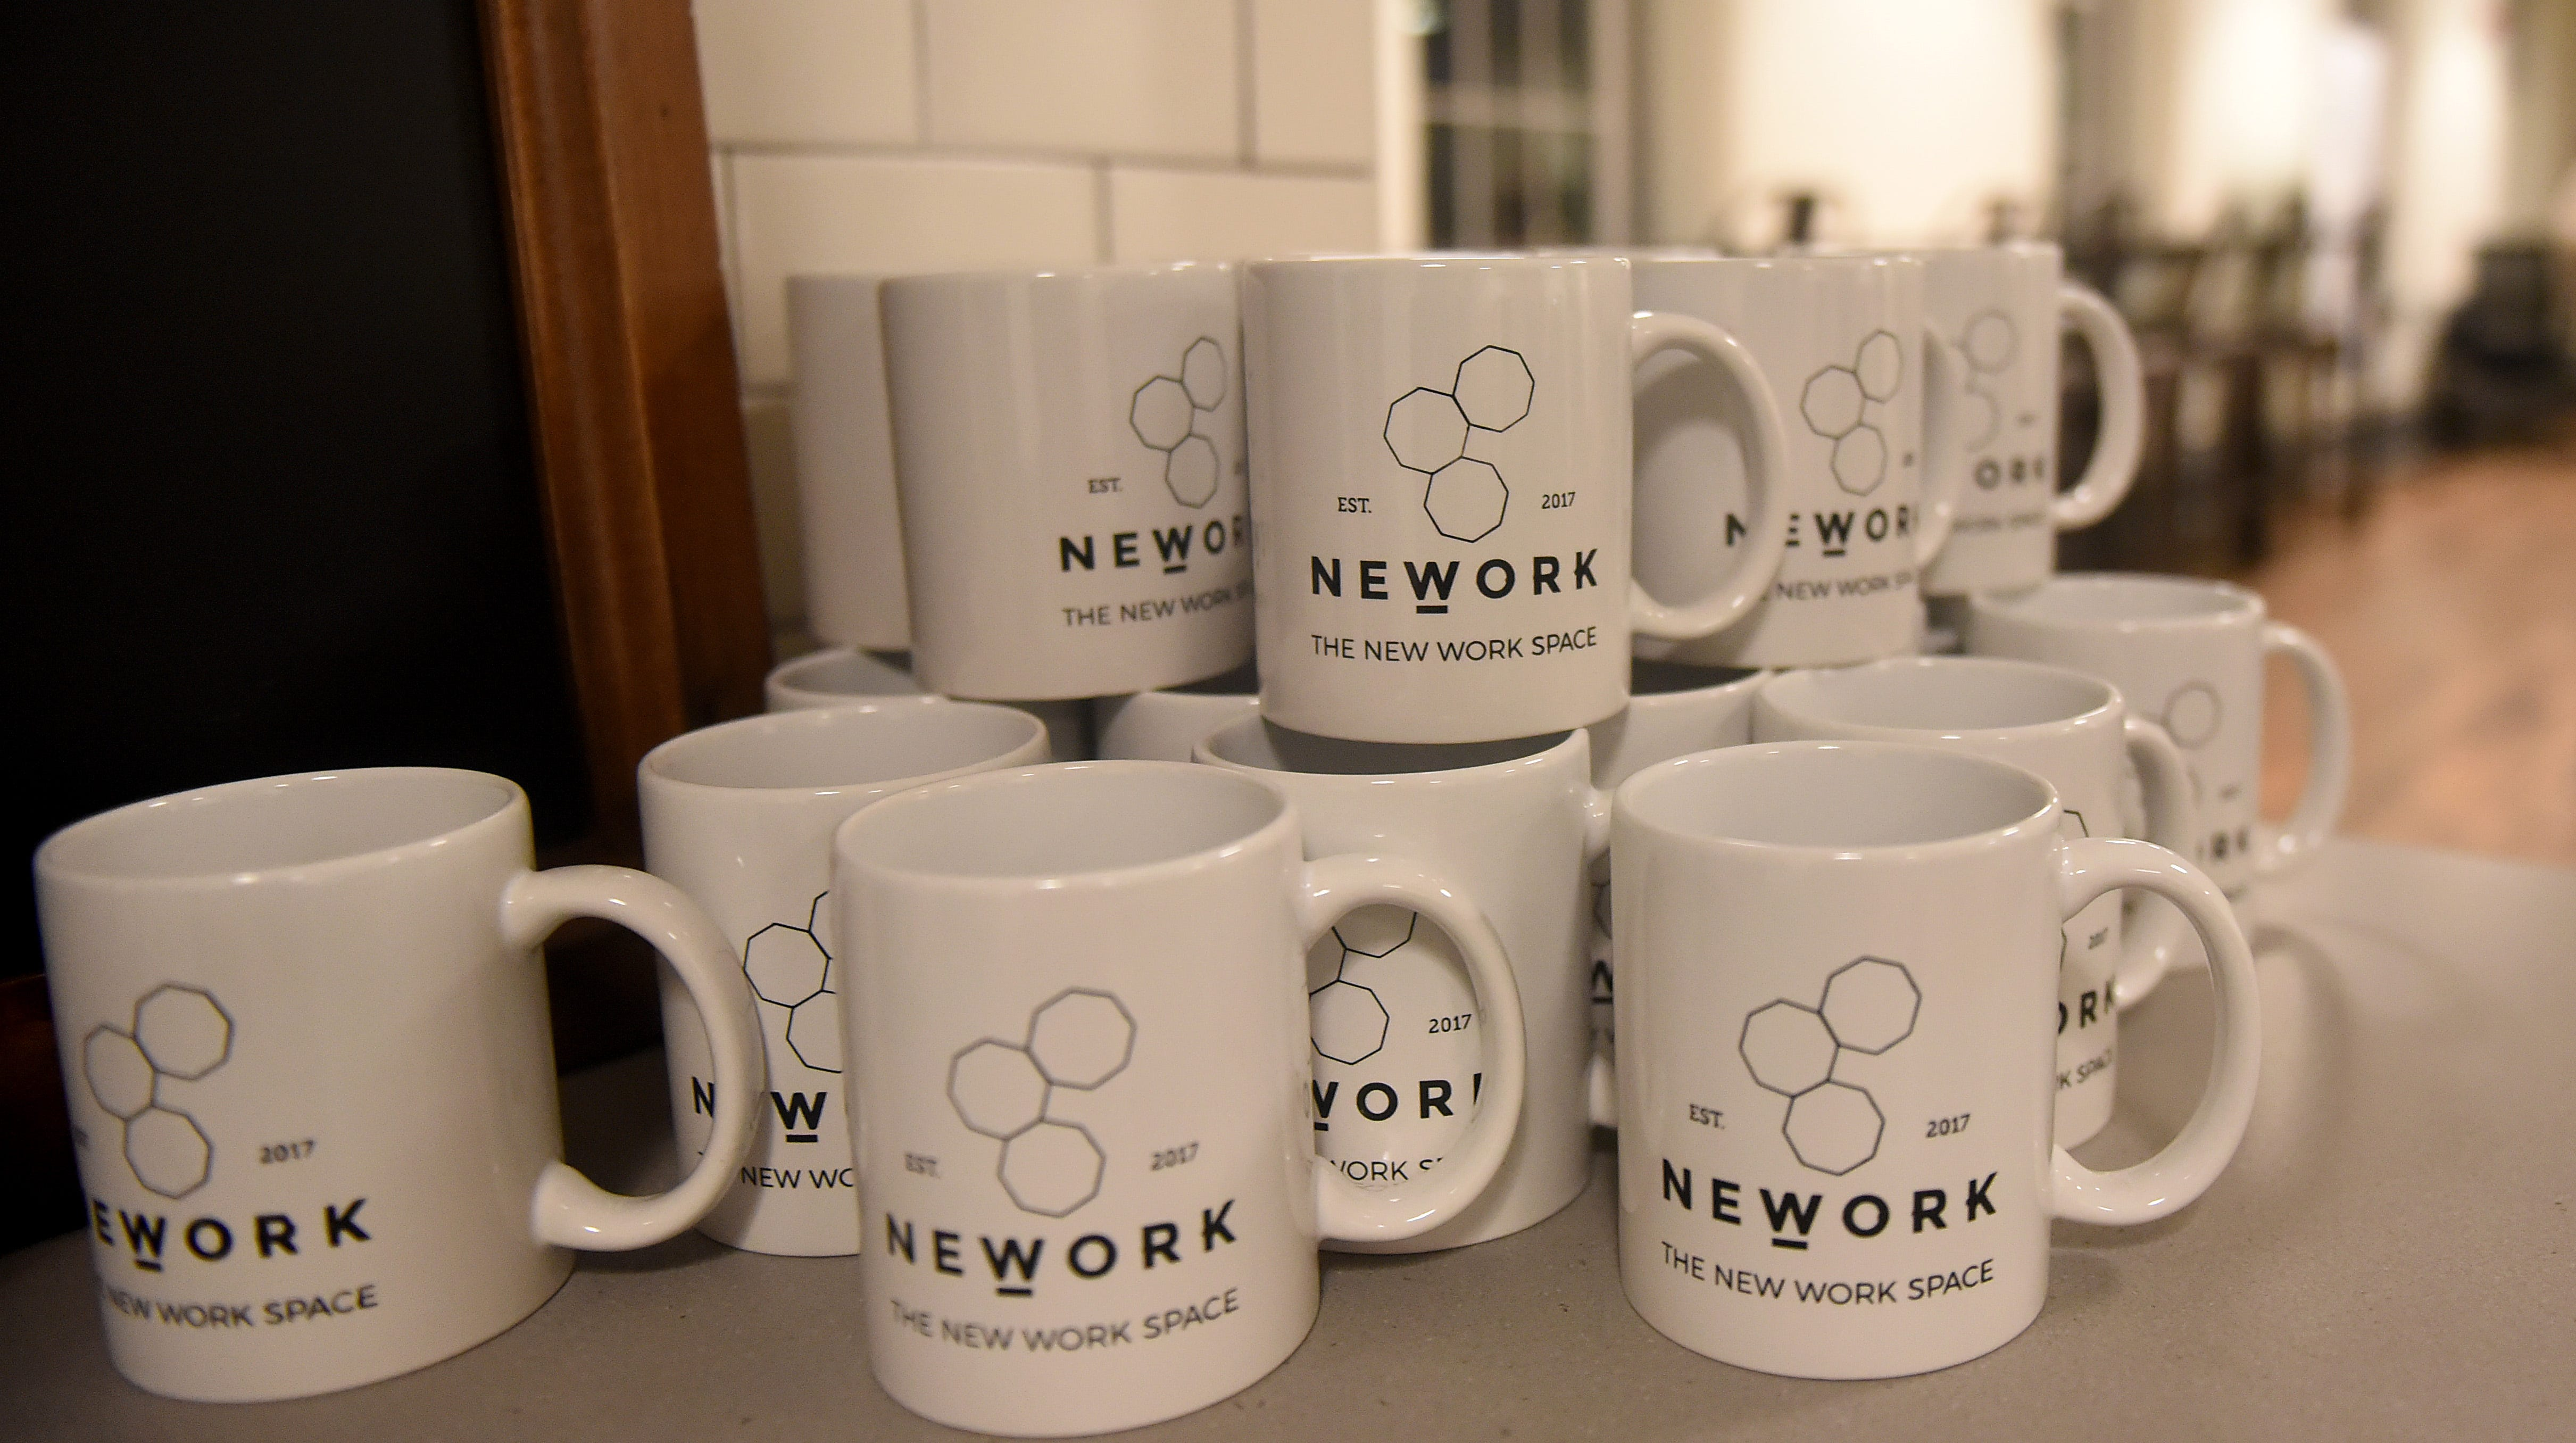 Local Insurance Company Embraces Coworking in Downtown Newark | The Newark Advocate